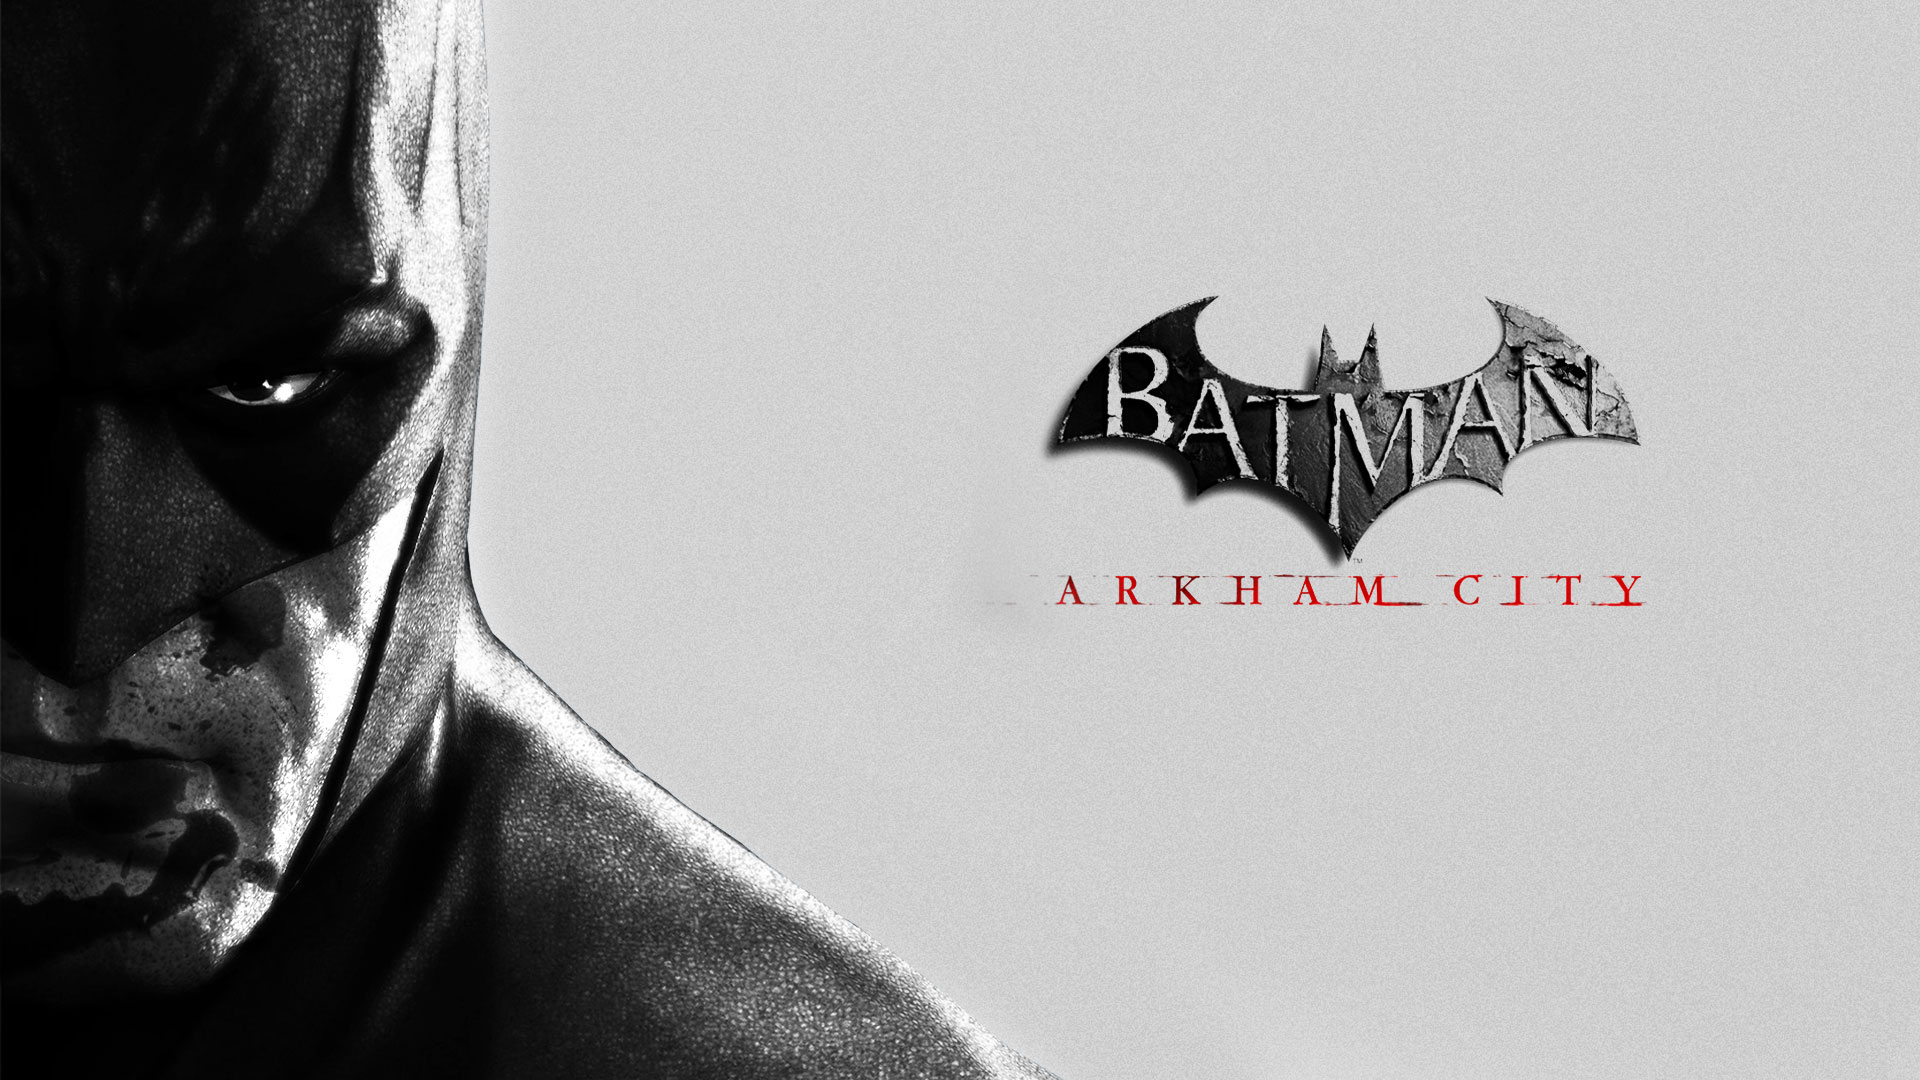 Batman Arkham City Wallpaper Hd wallpaper   390257 1920x1080